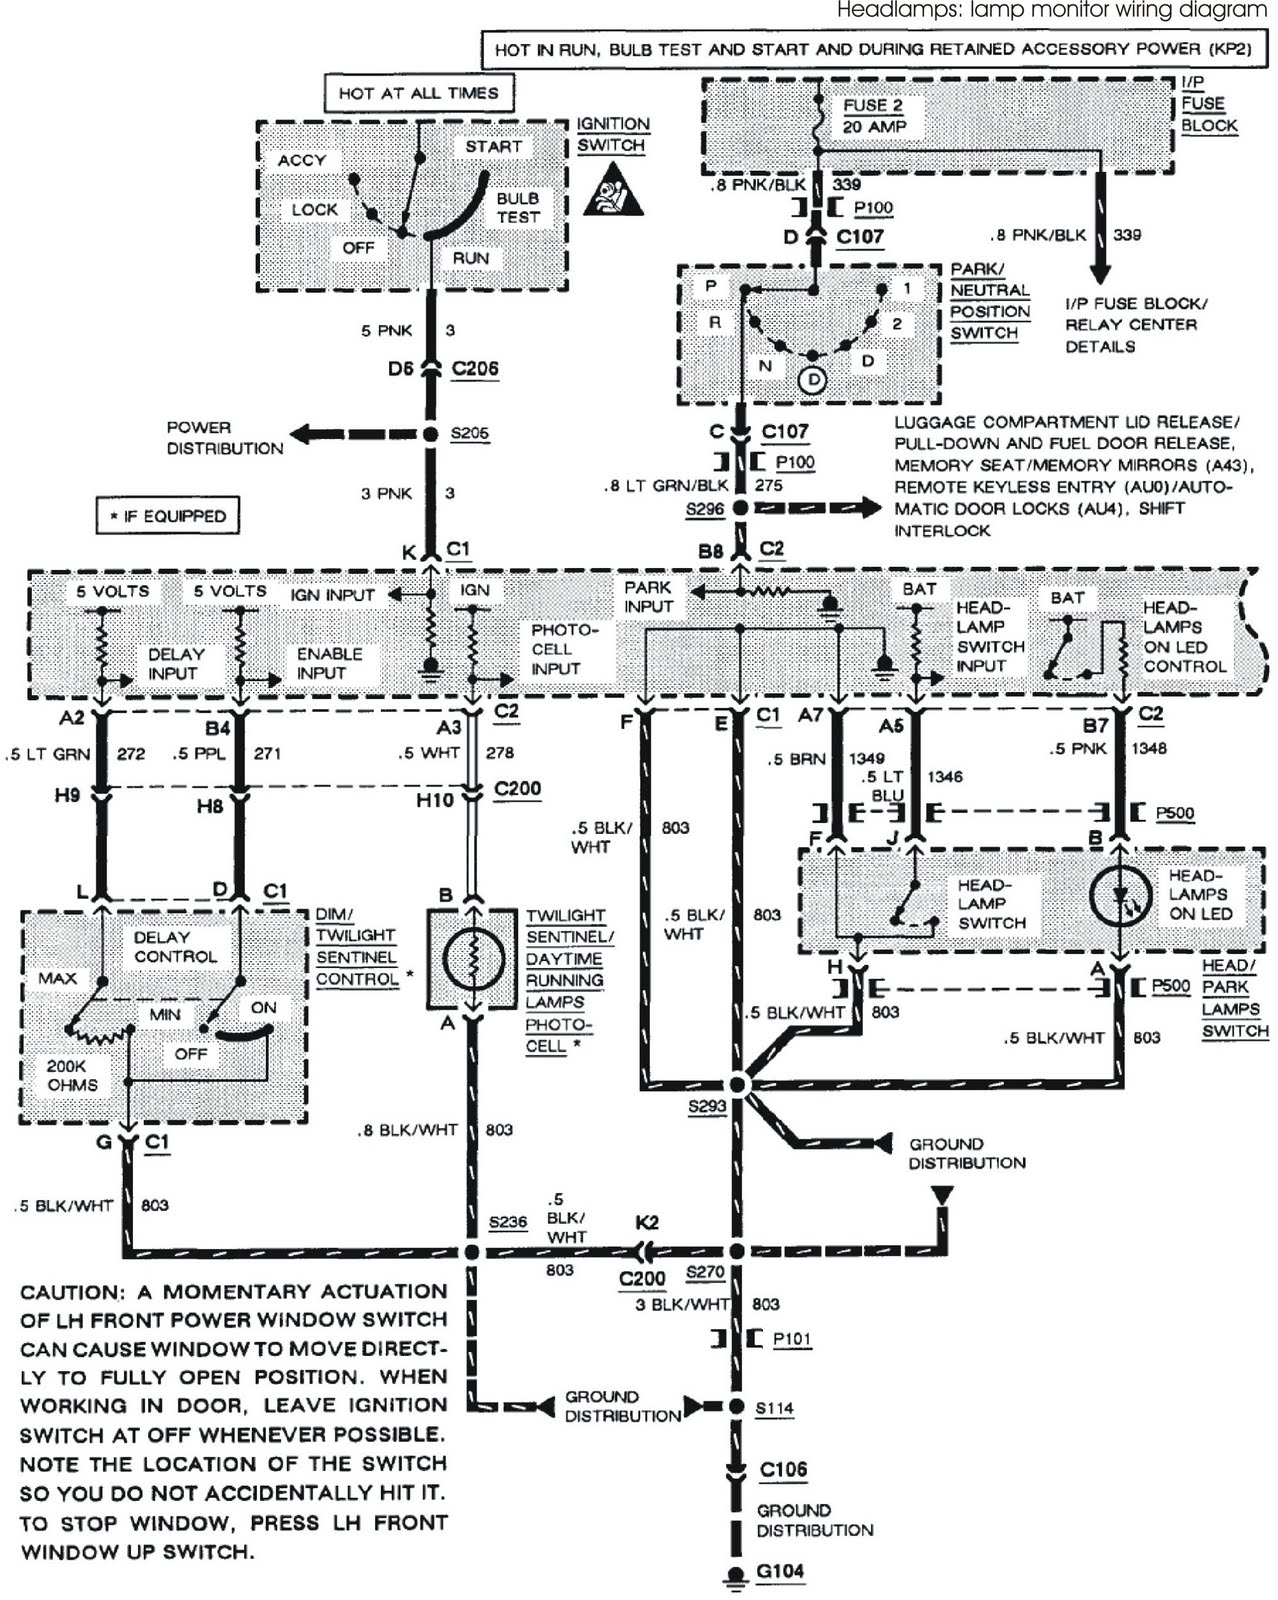 1994 honda accord headlight wiring diagram wiring diagram Wiring Diagram for 1996 Nissan Maxima  2001 Buick Park Avenue Fuse Box Diagram Wiring Diagram for 2001 Pontiac Grand AM 2001 Buick Park Avenue Wiring-Diagram